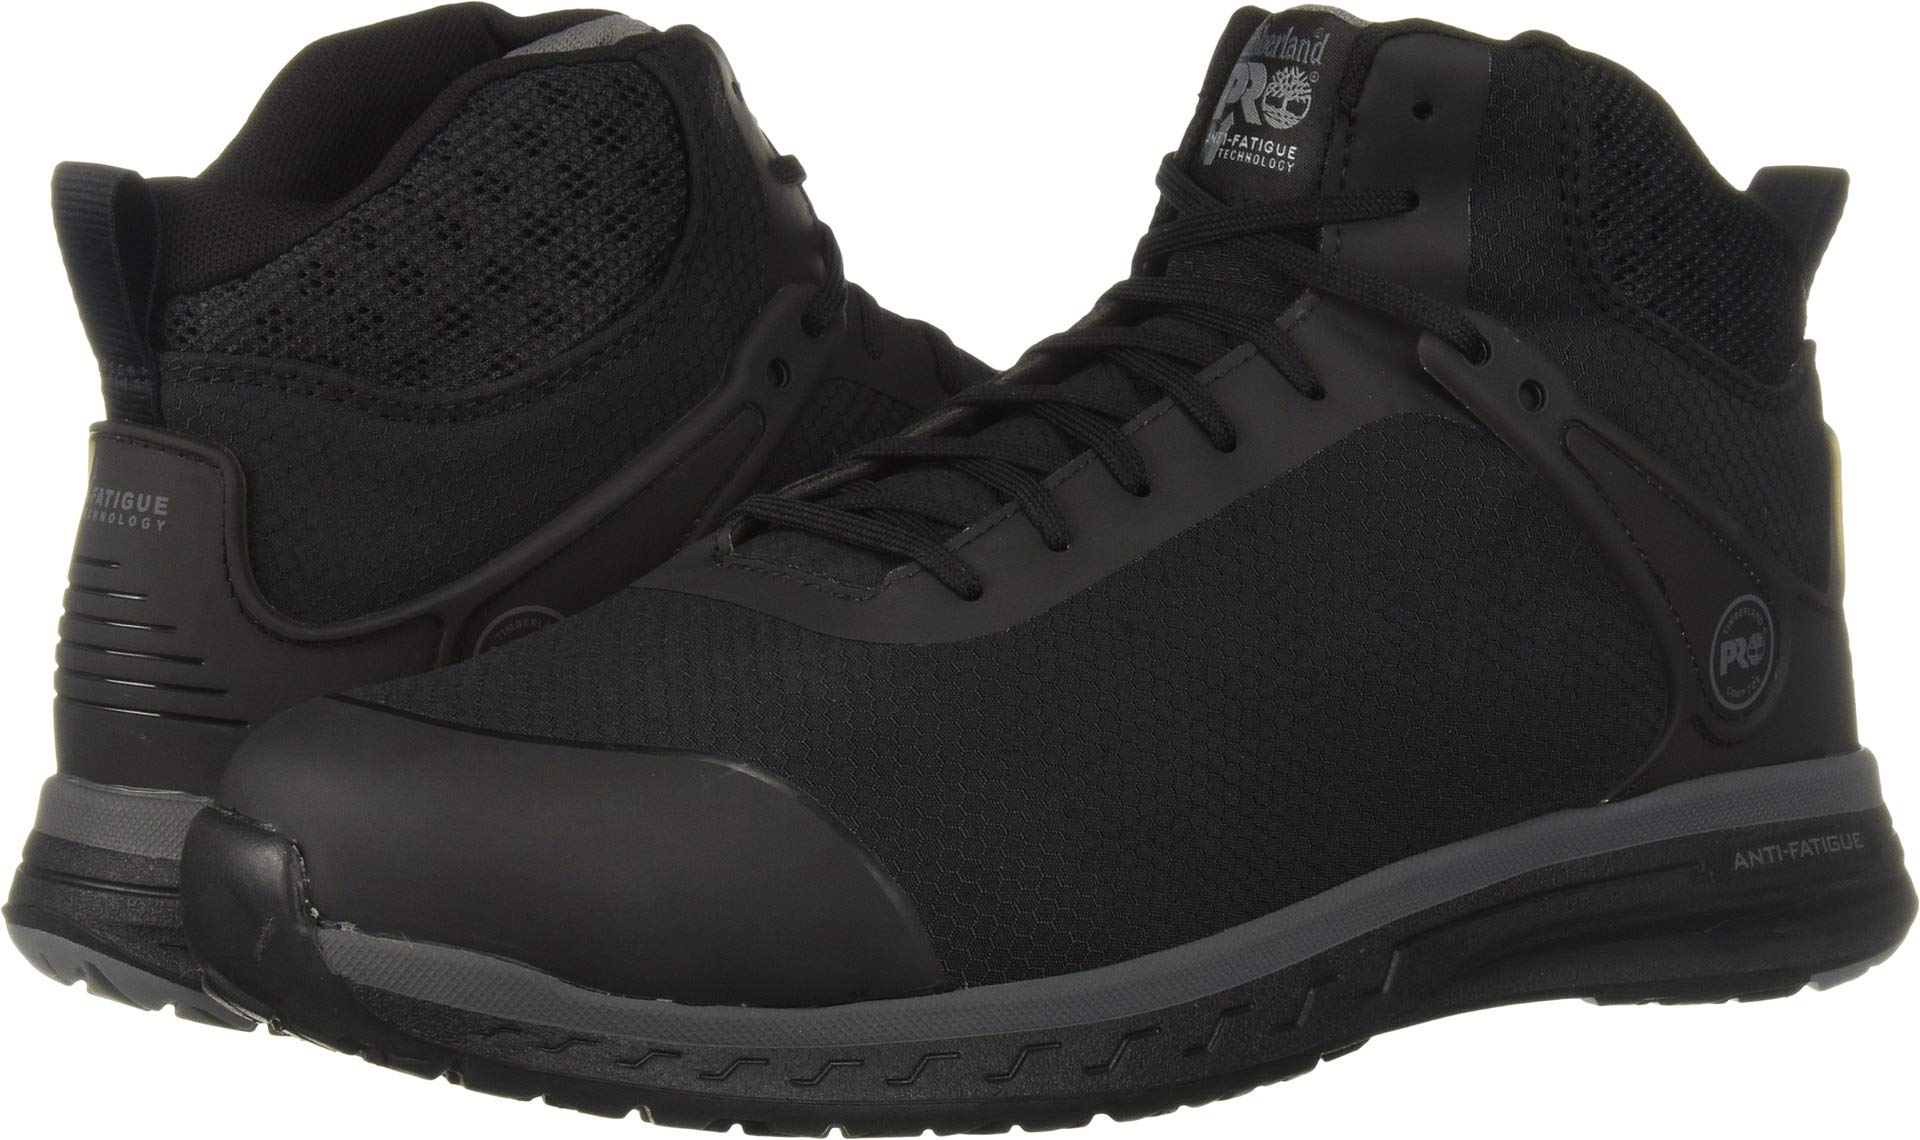 Timberland PRO Men's Drivetrain Mid Composite Toe Industrial Boot, Black, 9.5 M US by Timberland PRO